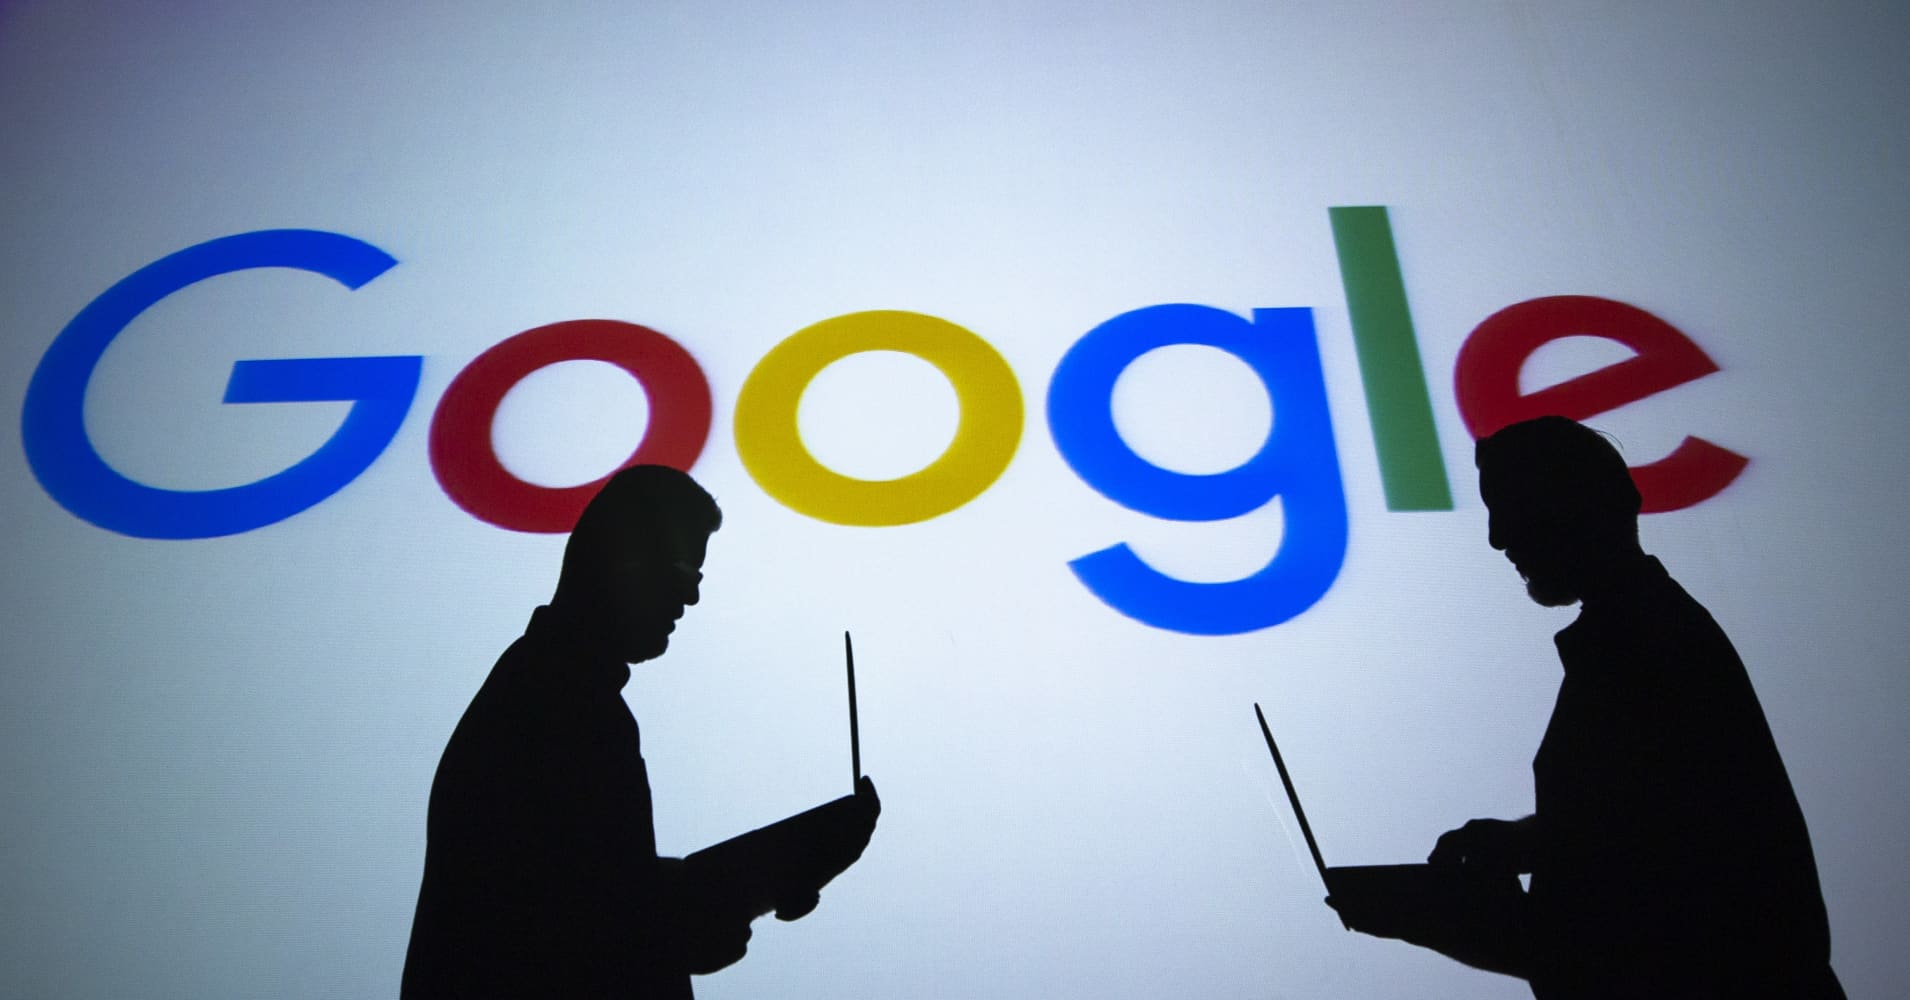 Silhouettes of people holding laptops are seen in front of the logo of 'Google' technology company.